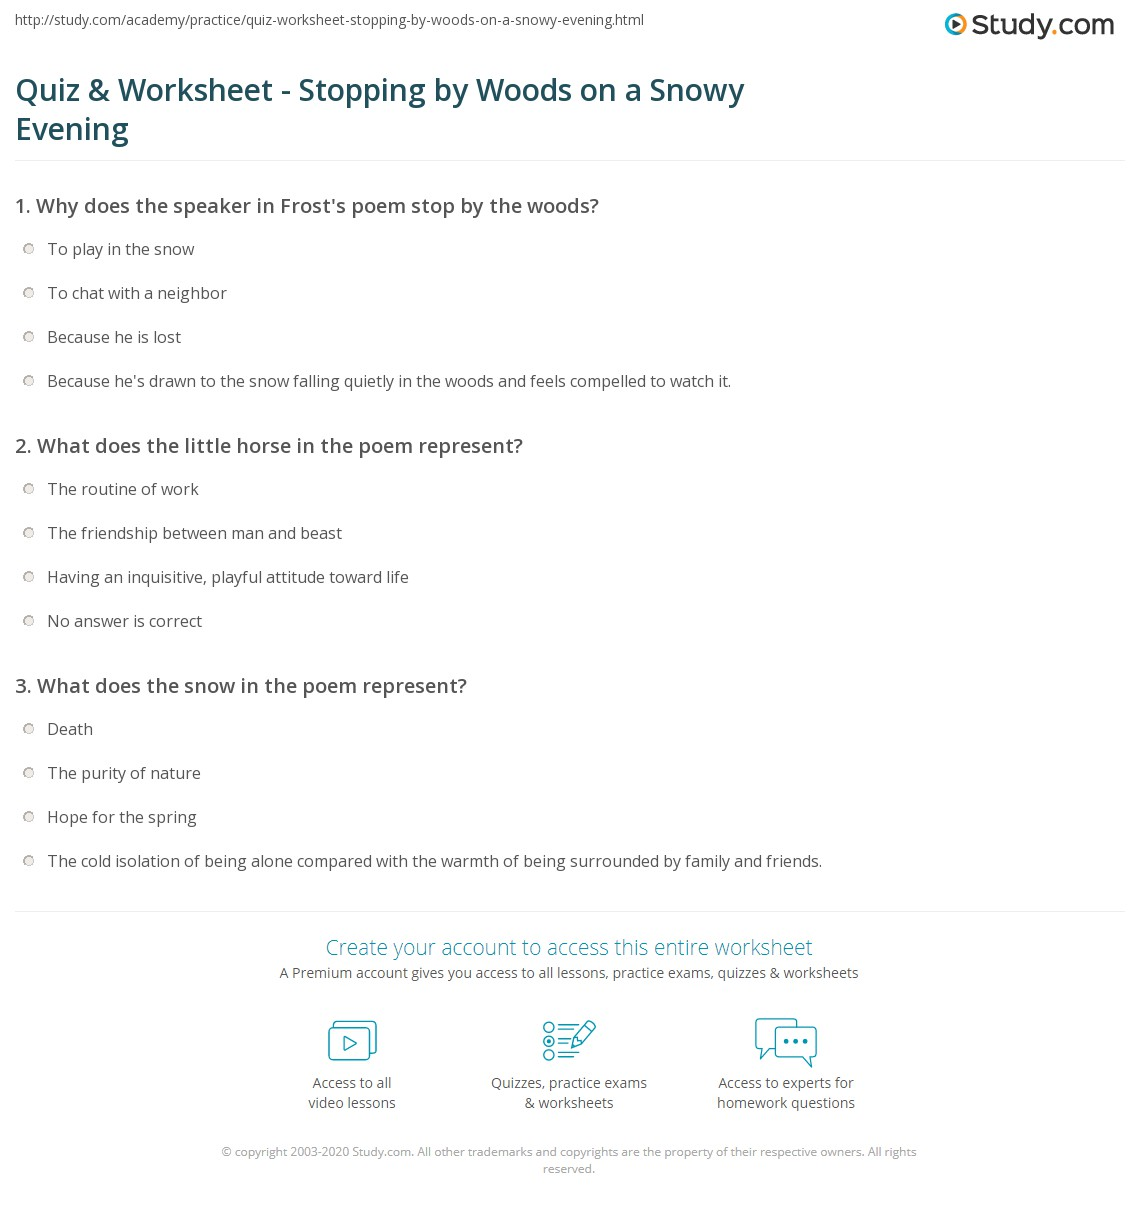 essay on stopping by woods on a snowy evening fahrenheit analysis  quiz worksheet stopping by woods on a snowy evening com print stopping by woods on a